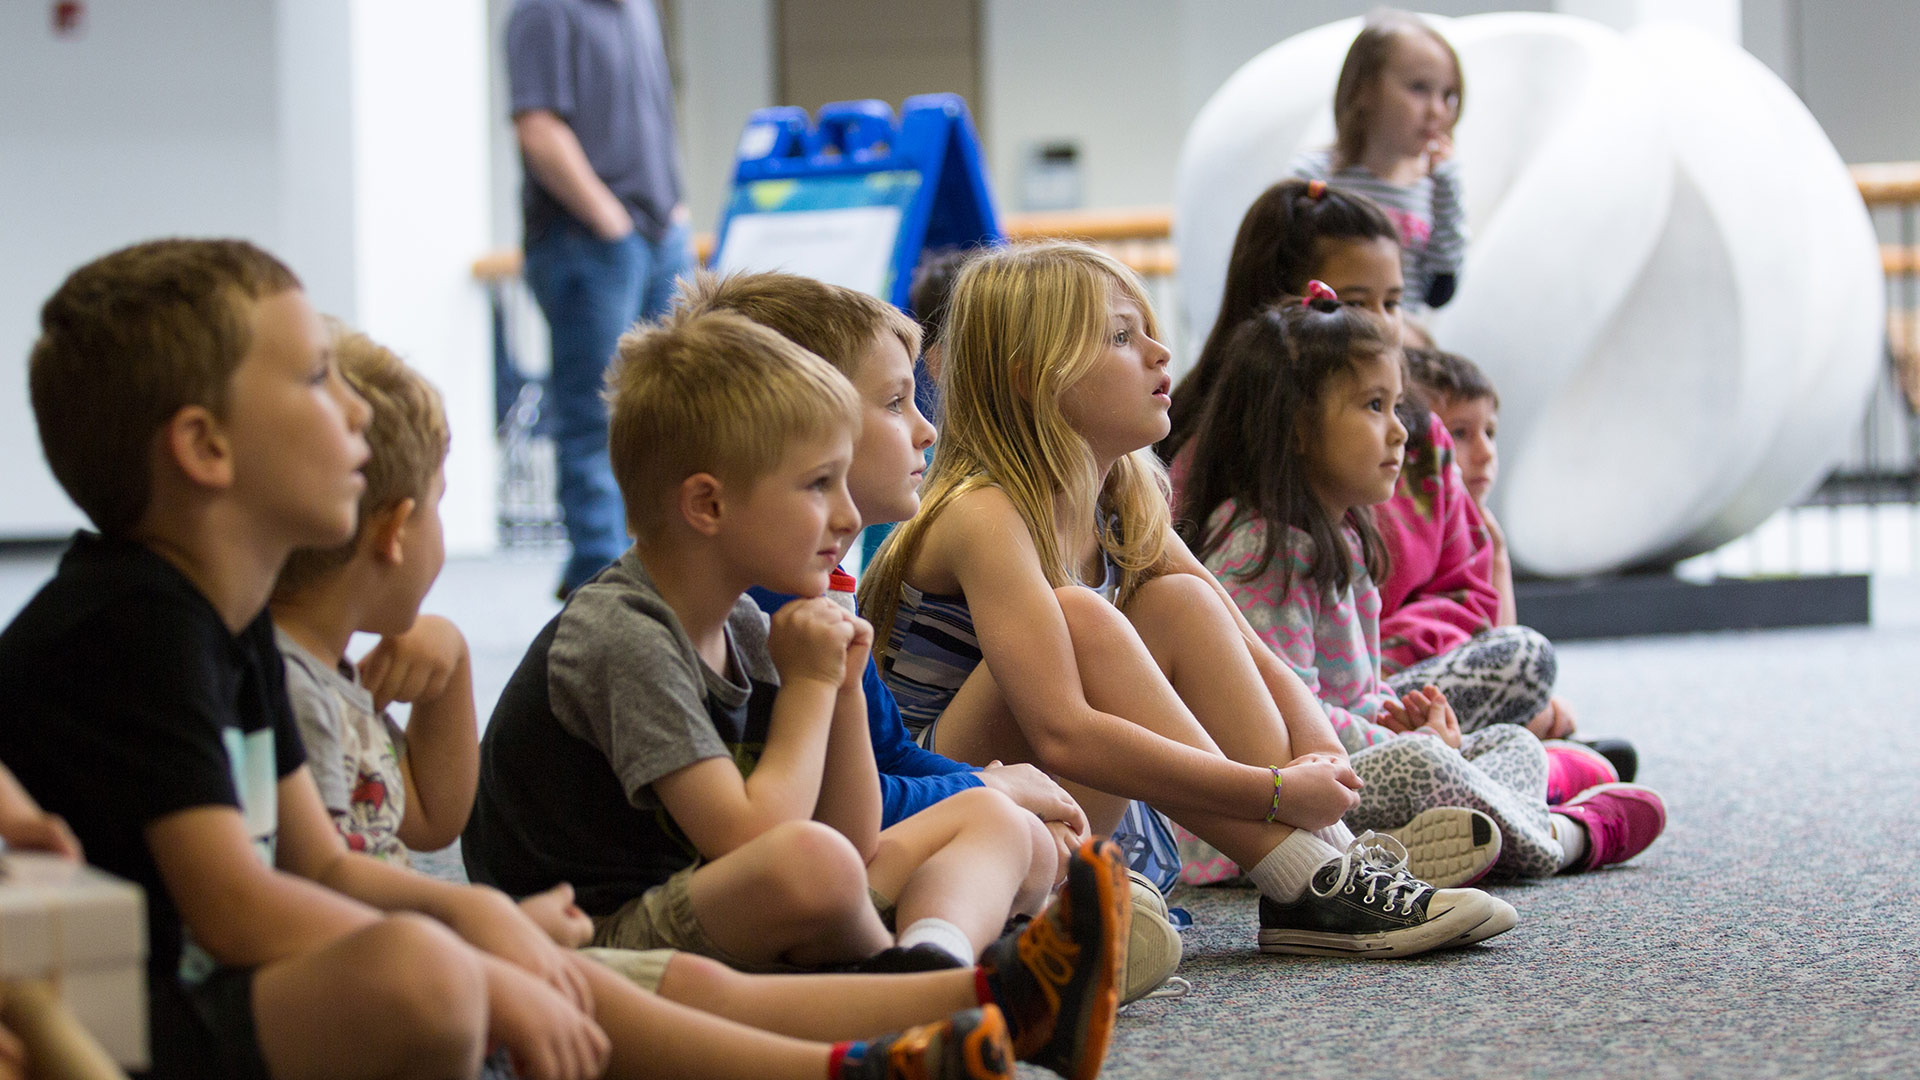 Students gathered during Family Art Day at UHCL.